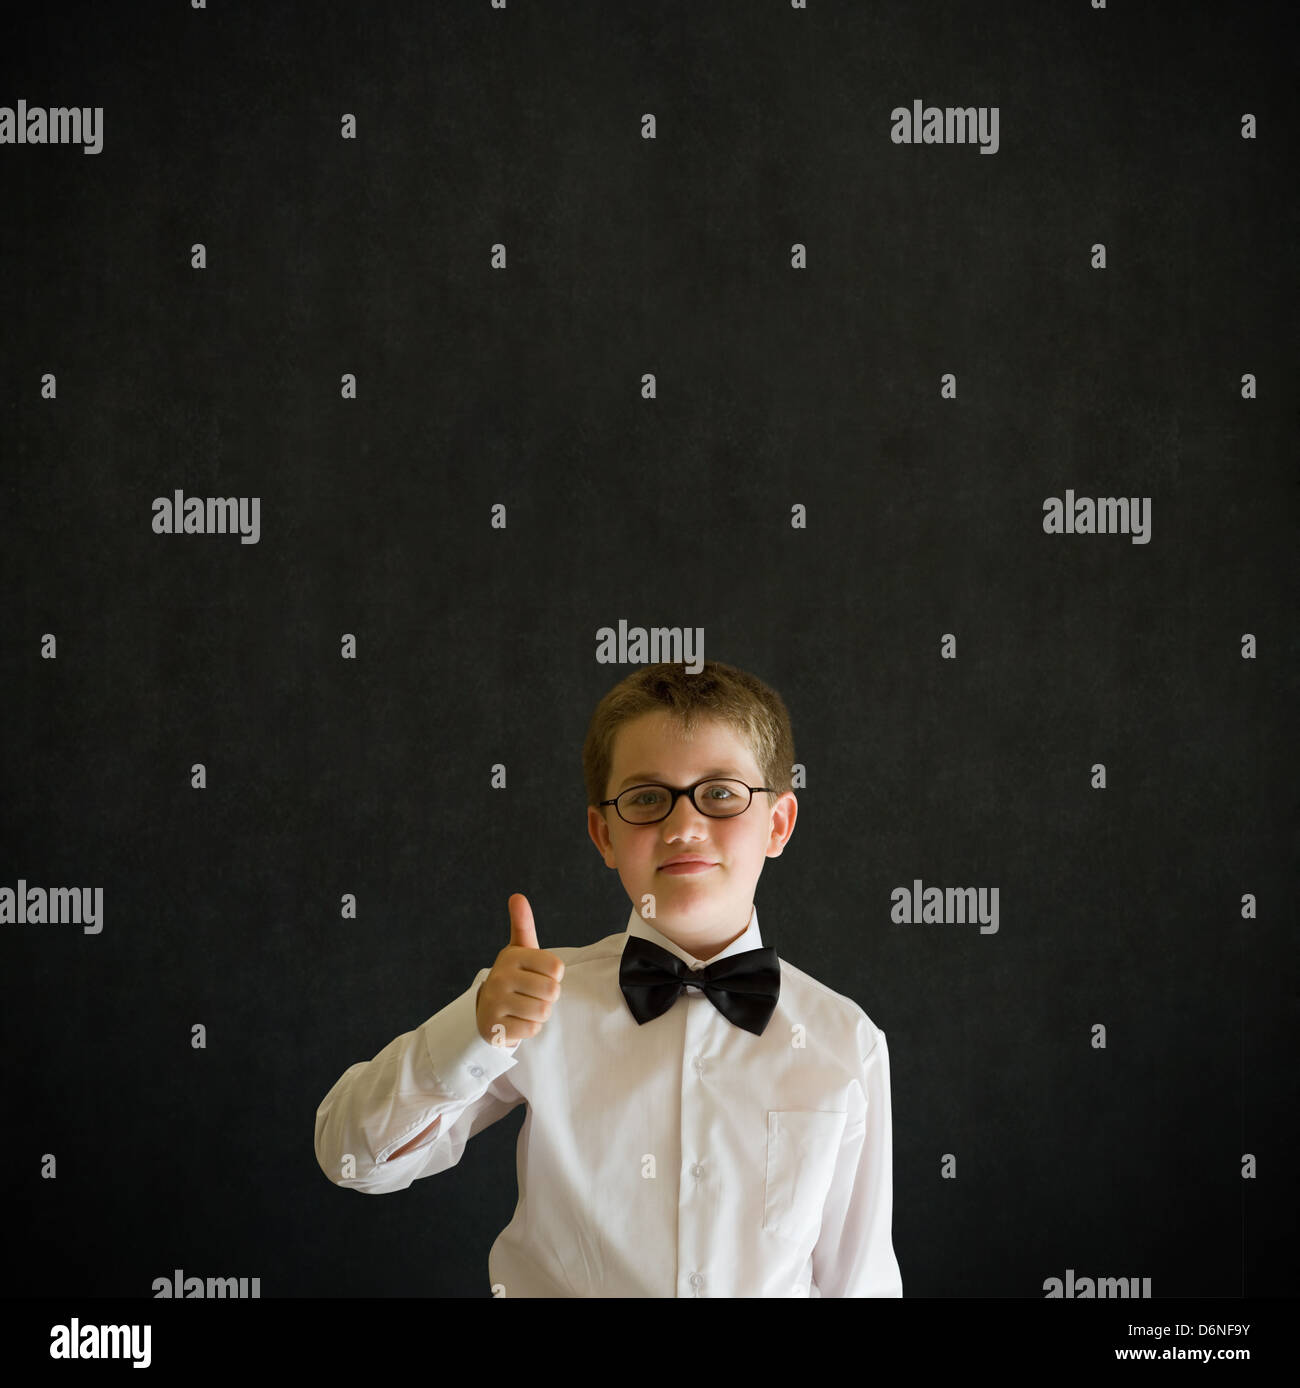 Thumbs up sign boy dressed up as business man, teacher or student on blackboard background Stock Photo